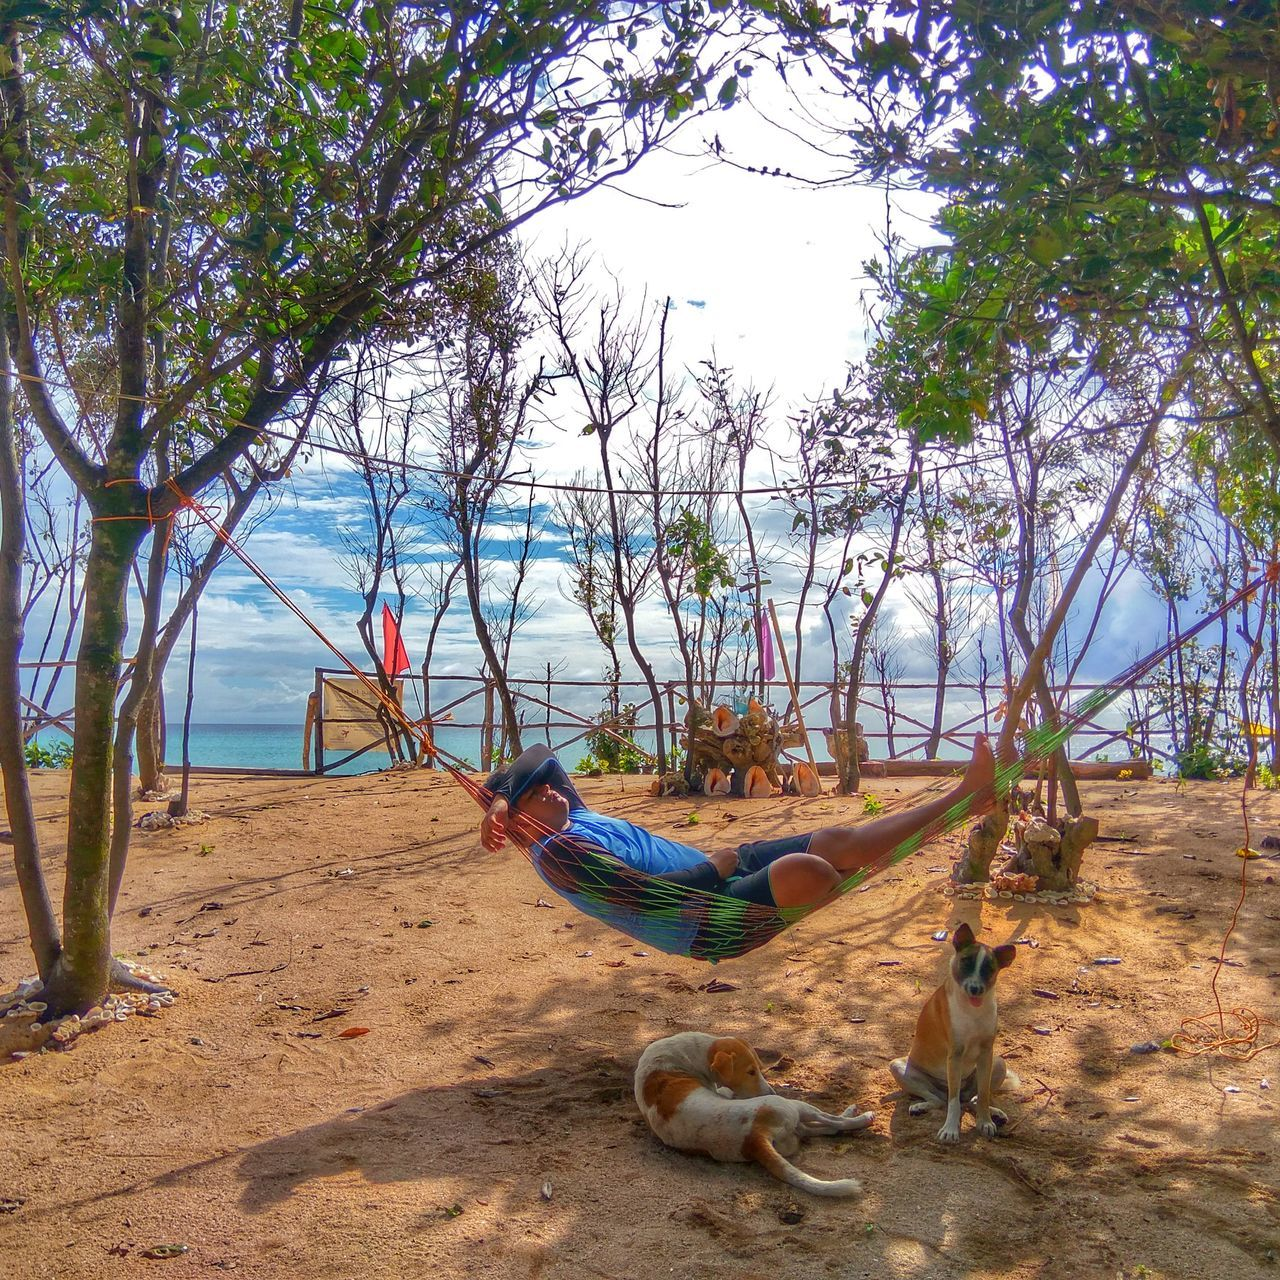 We travel not to escape life, but for life not to escape us.. Jomalig Jomalig Island Sand Beach Tree Nature Outdoors Hammock TravelPhilippines Travelph Byahenitinoki Travelgram Sea Byahenitinoki Dog Shore Sky Day Solotraveler Solo EyeEmNewHere